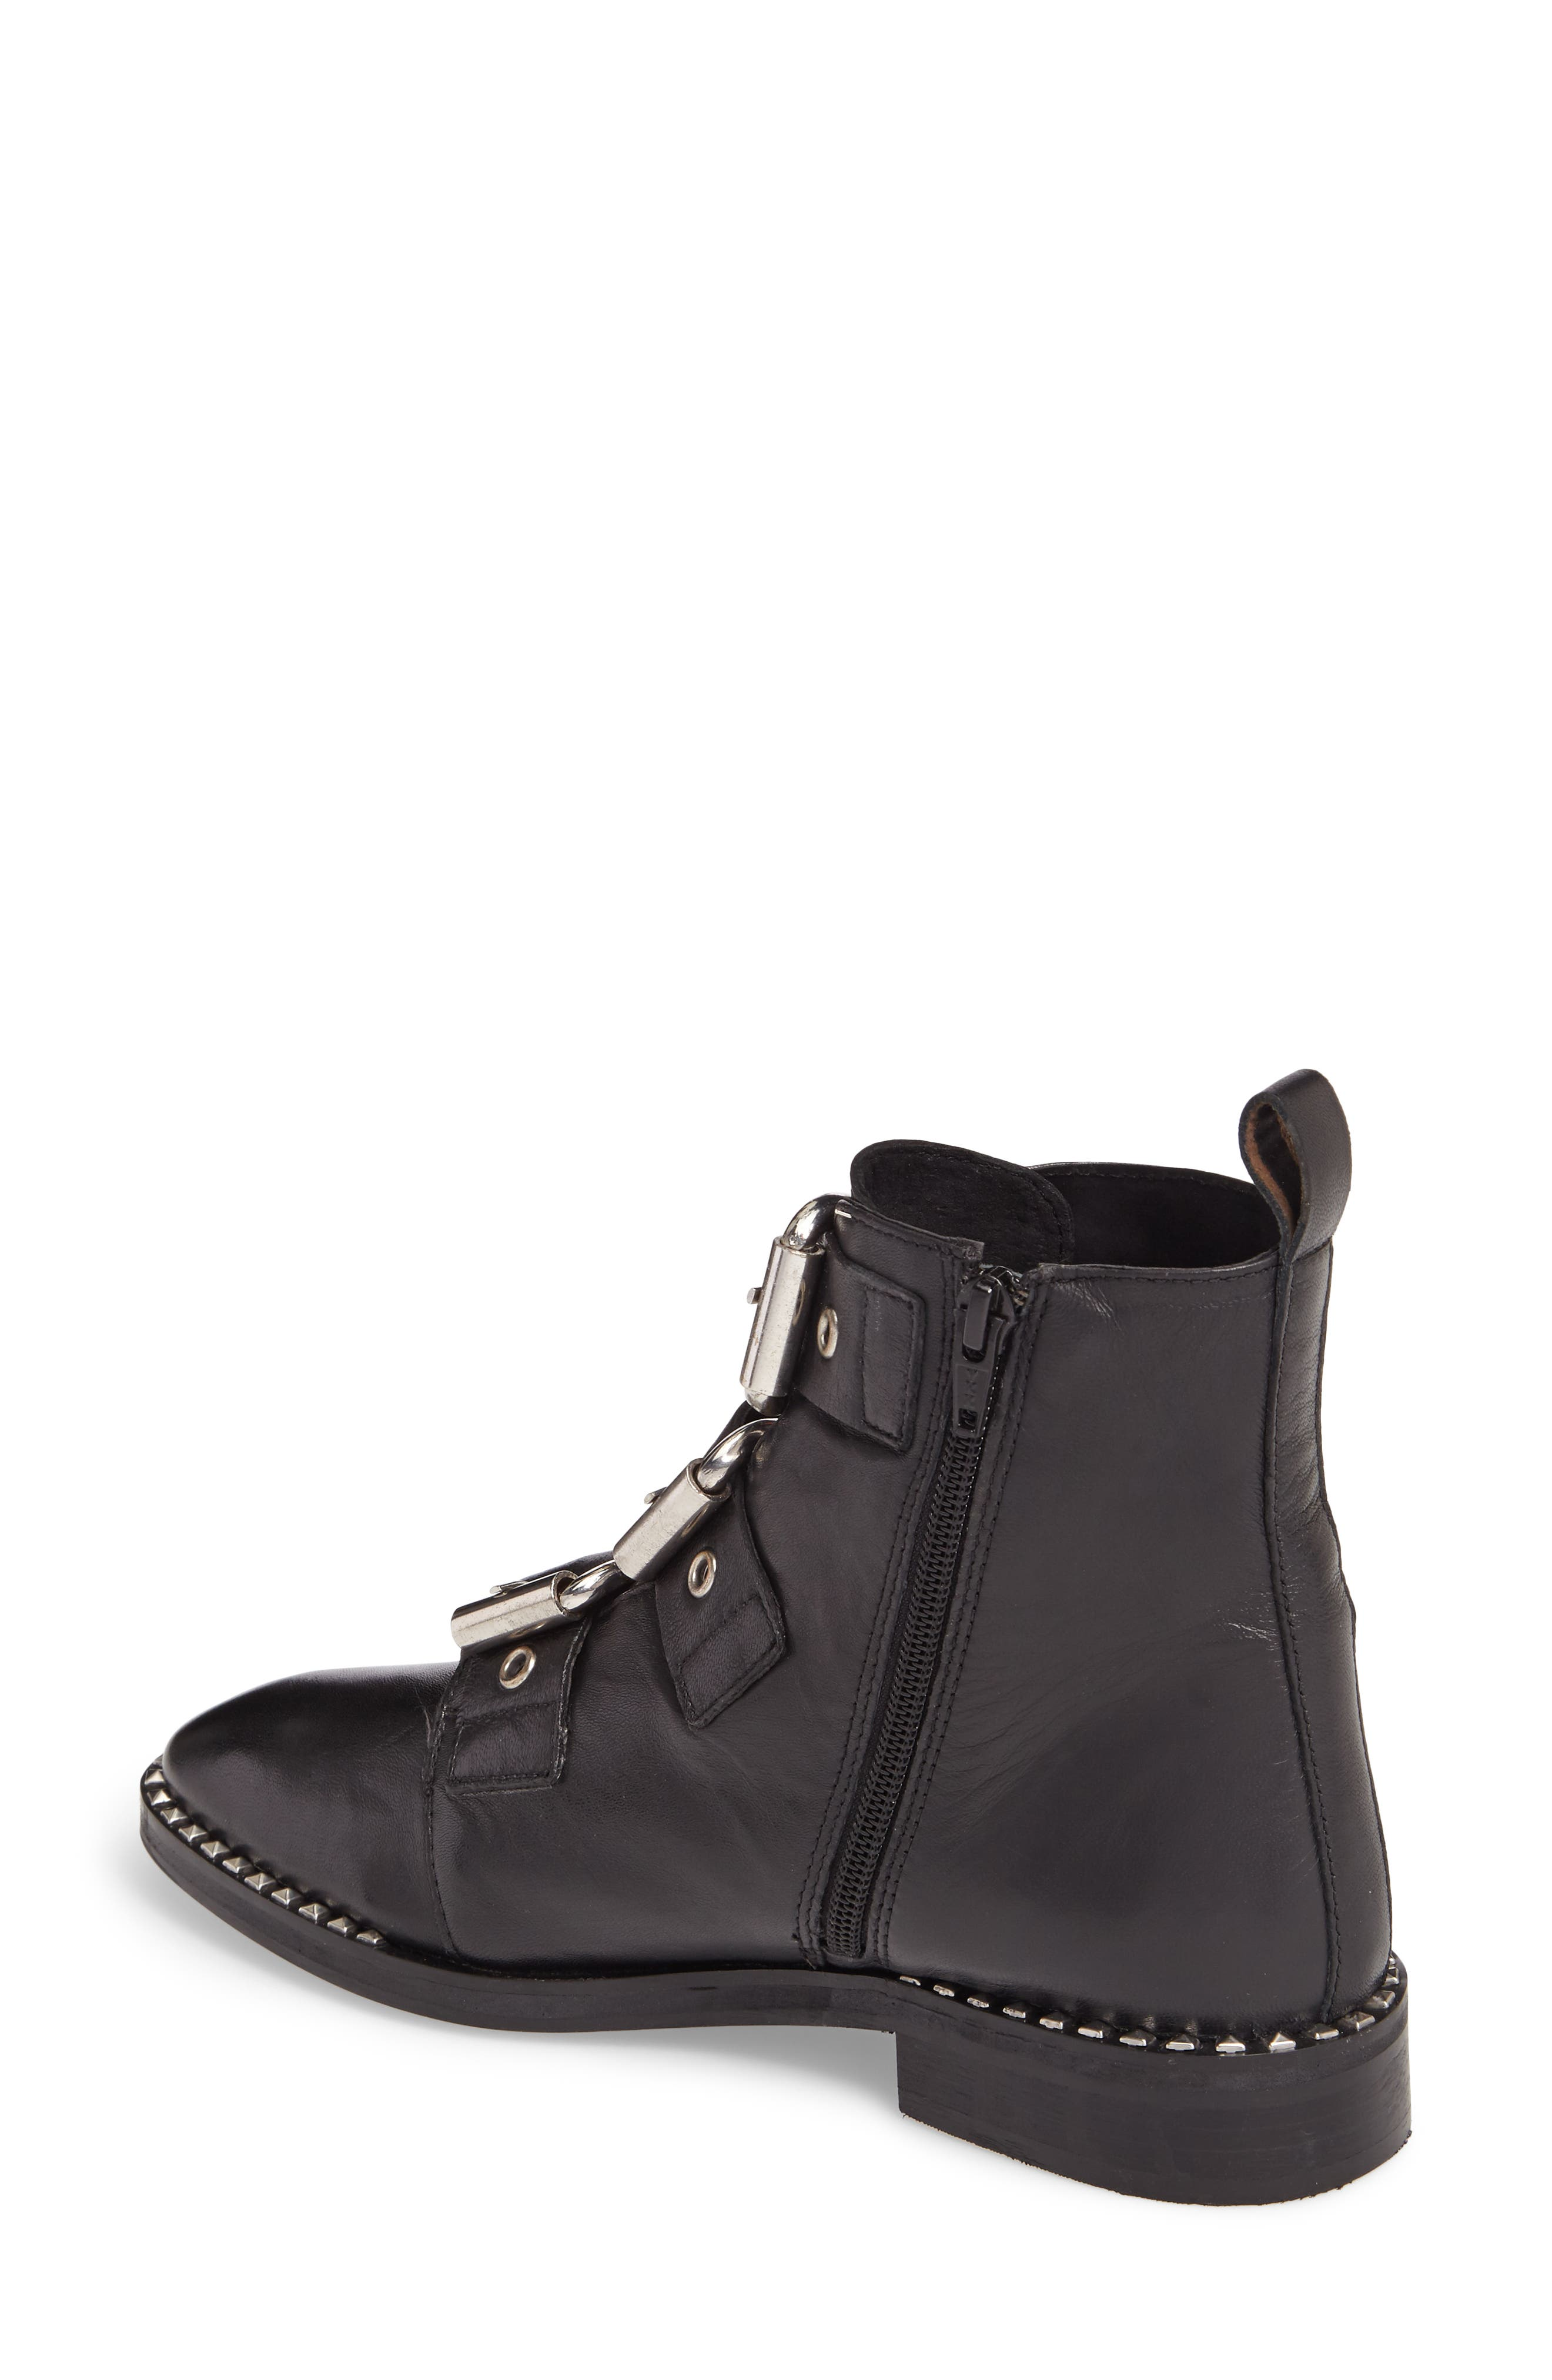 Alfie Buckle Ankle Boot,                             Alternate thumbnail 2, color,                             001